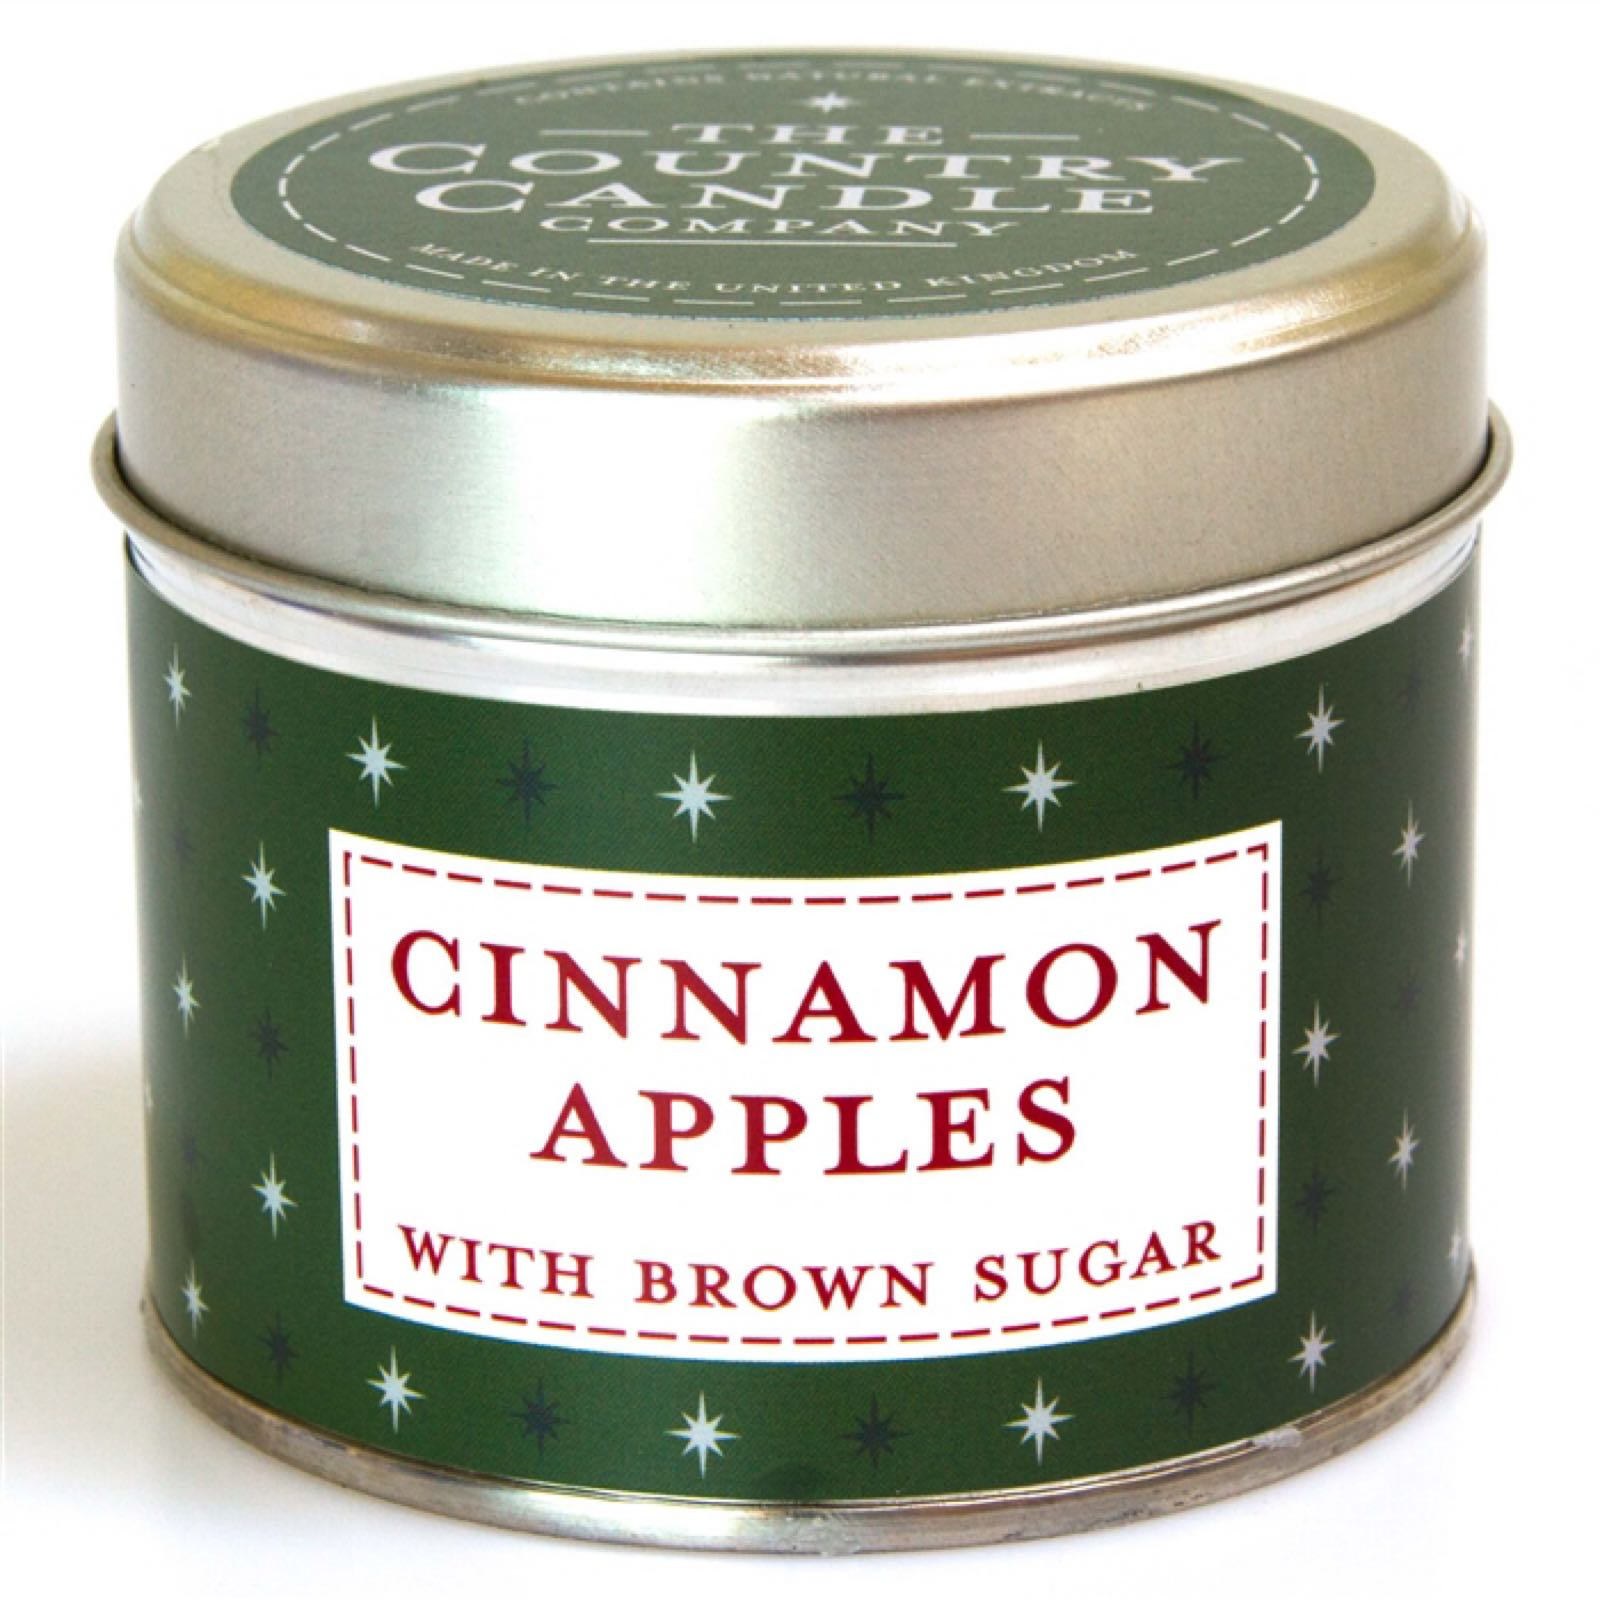 'Cinnamon Apples' Candle in a Tin